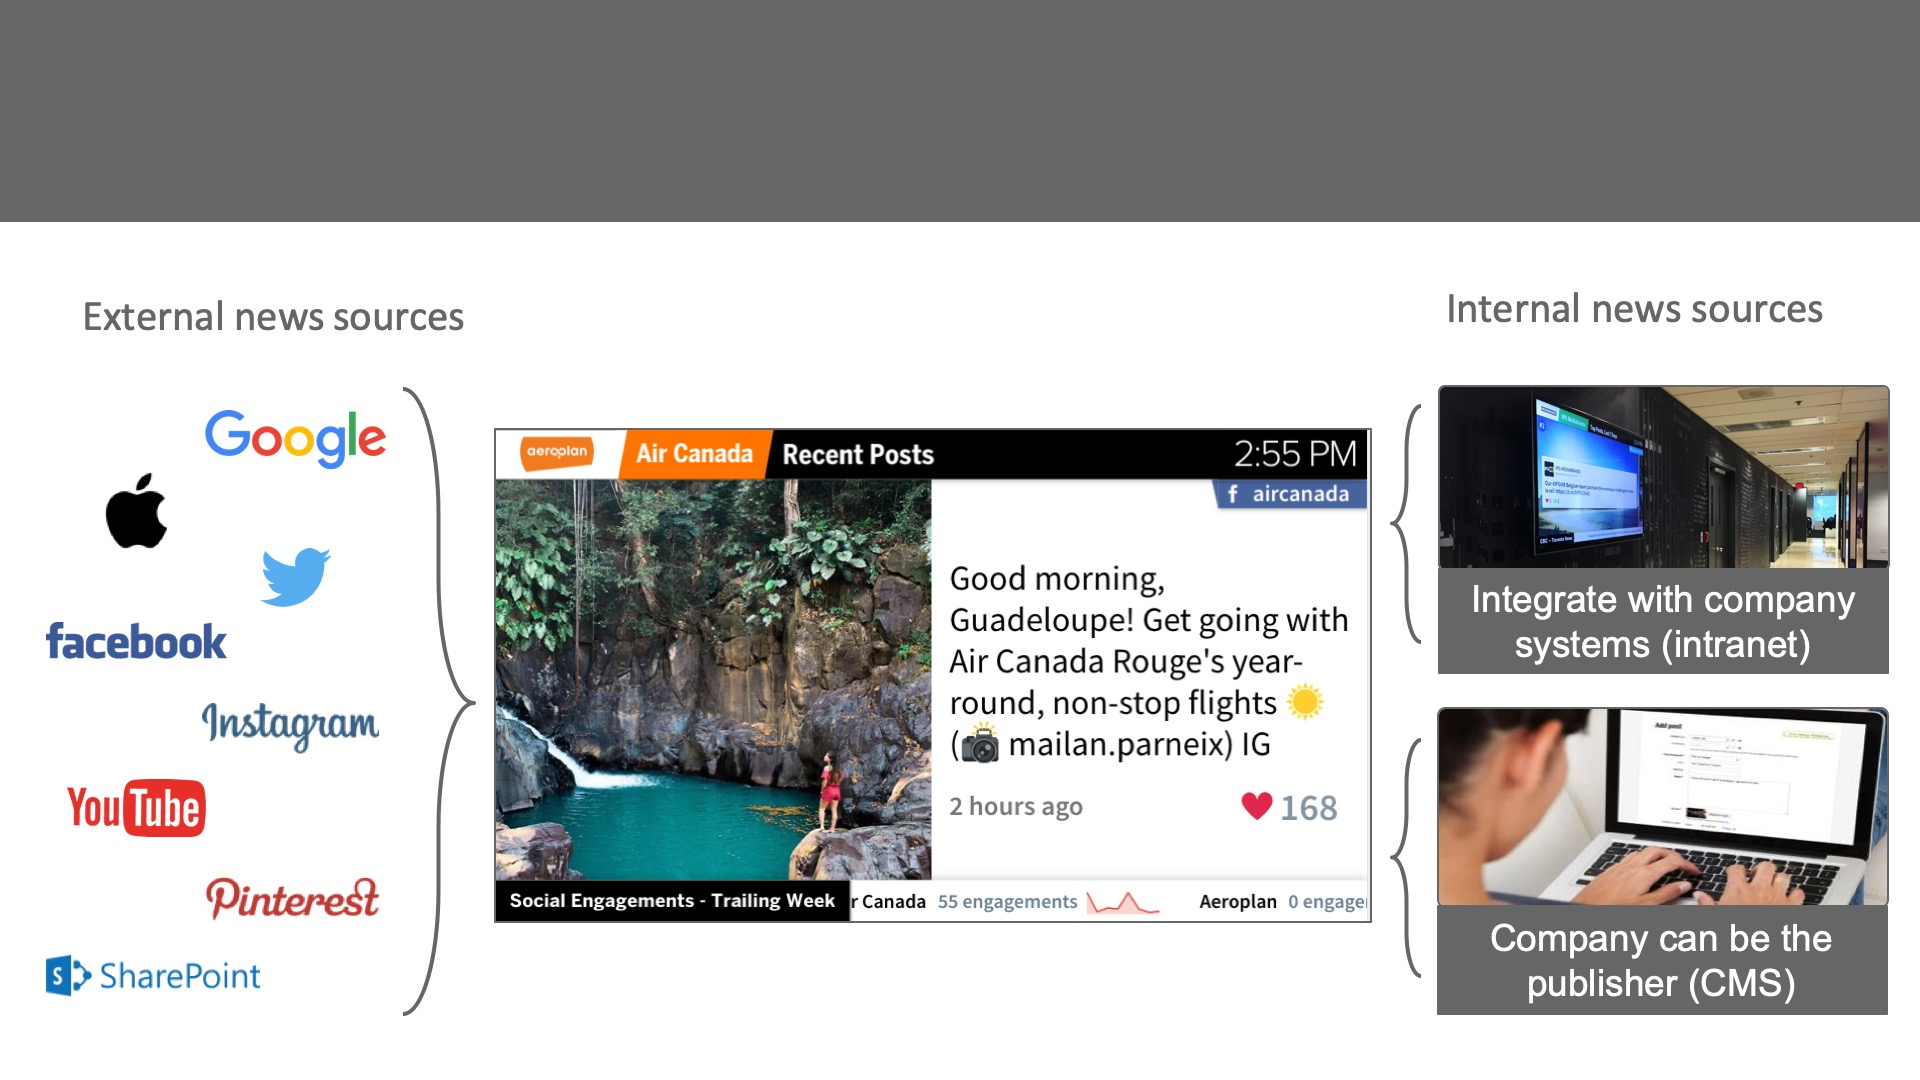 DIVE unifies company news & data sourcesinto auto-generated visual playlists